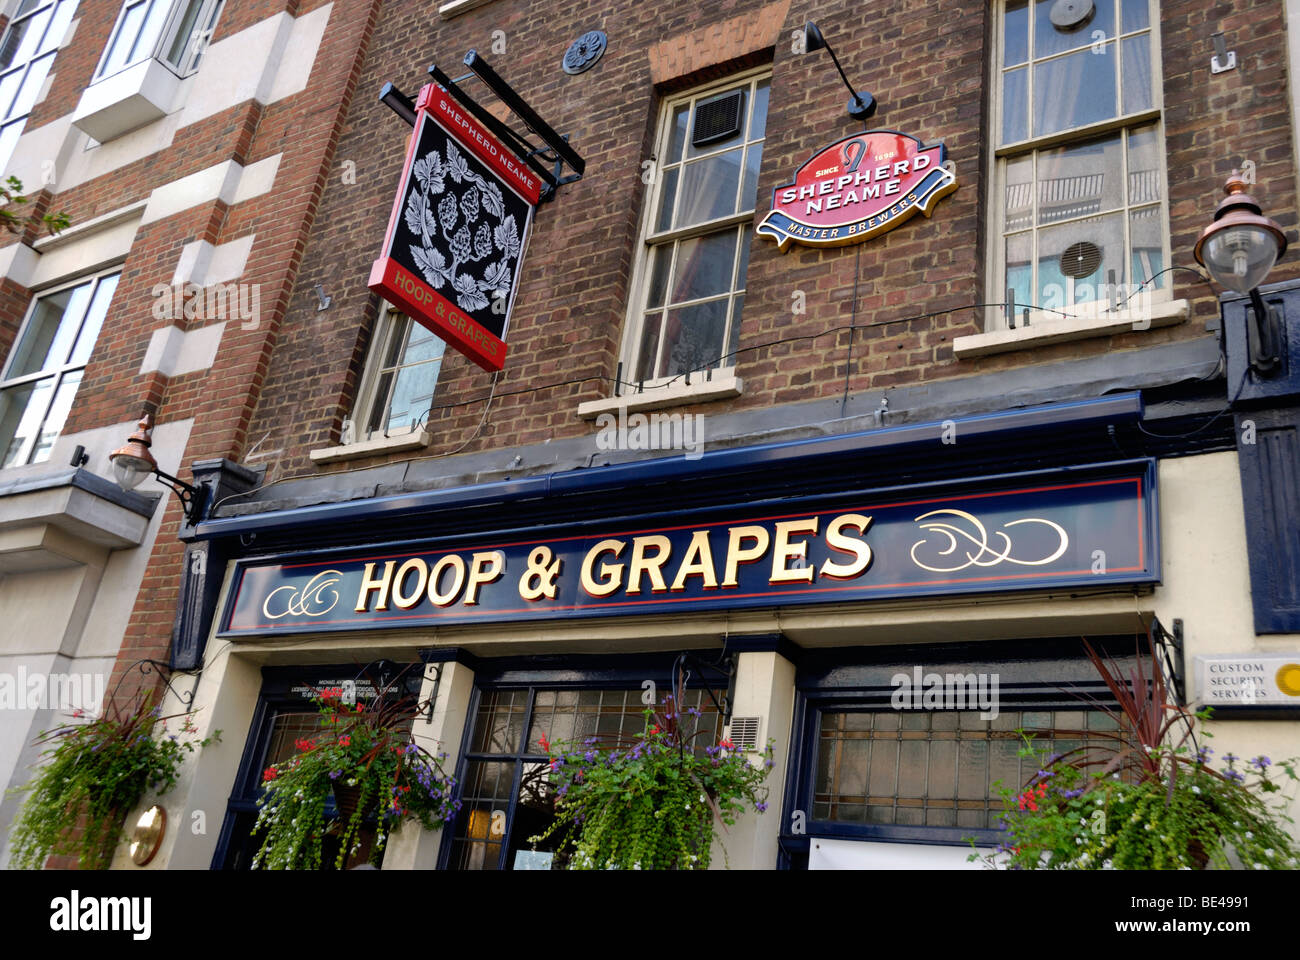 The Hoop and Grapes public house in Farringdon Street, London EC4, England - Stock Image